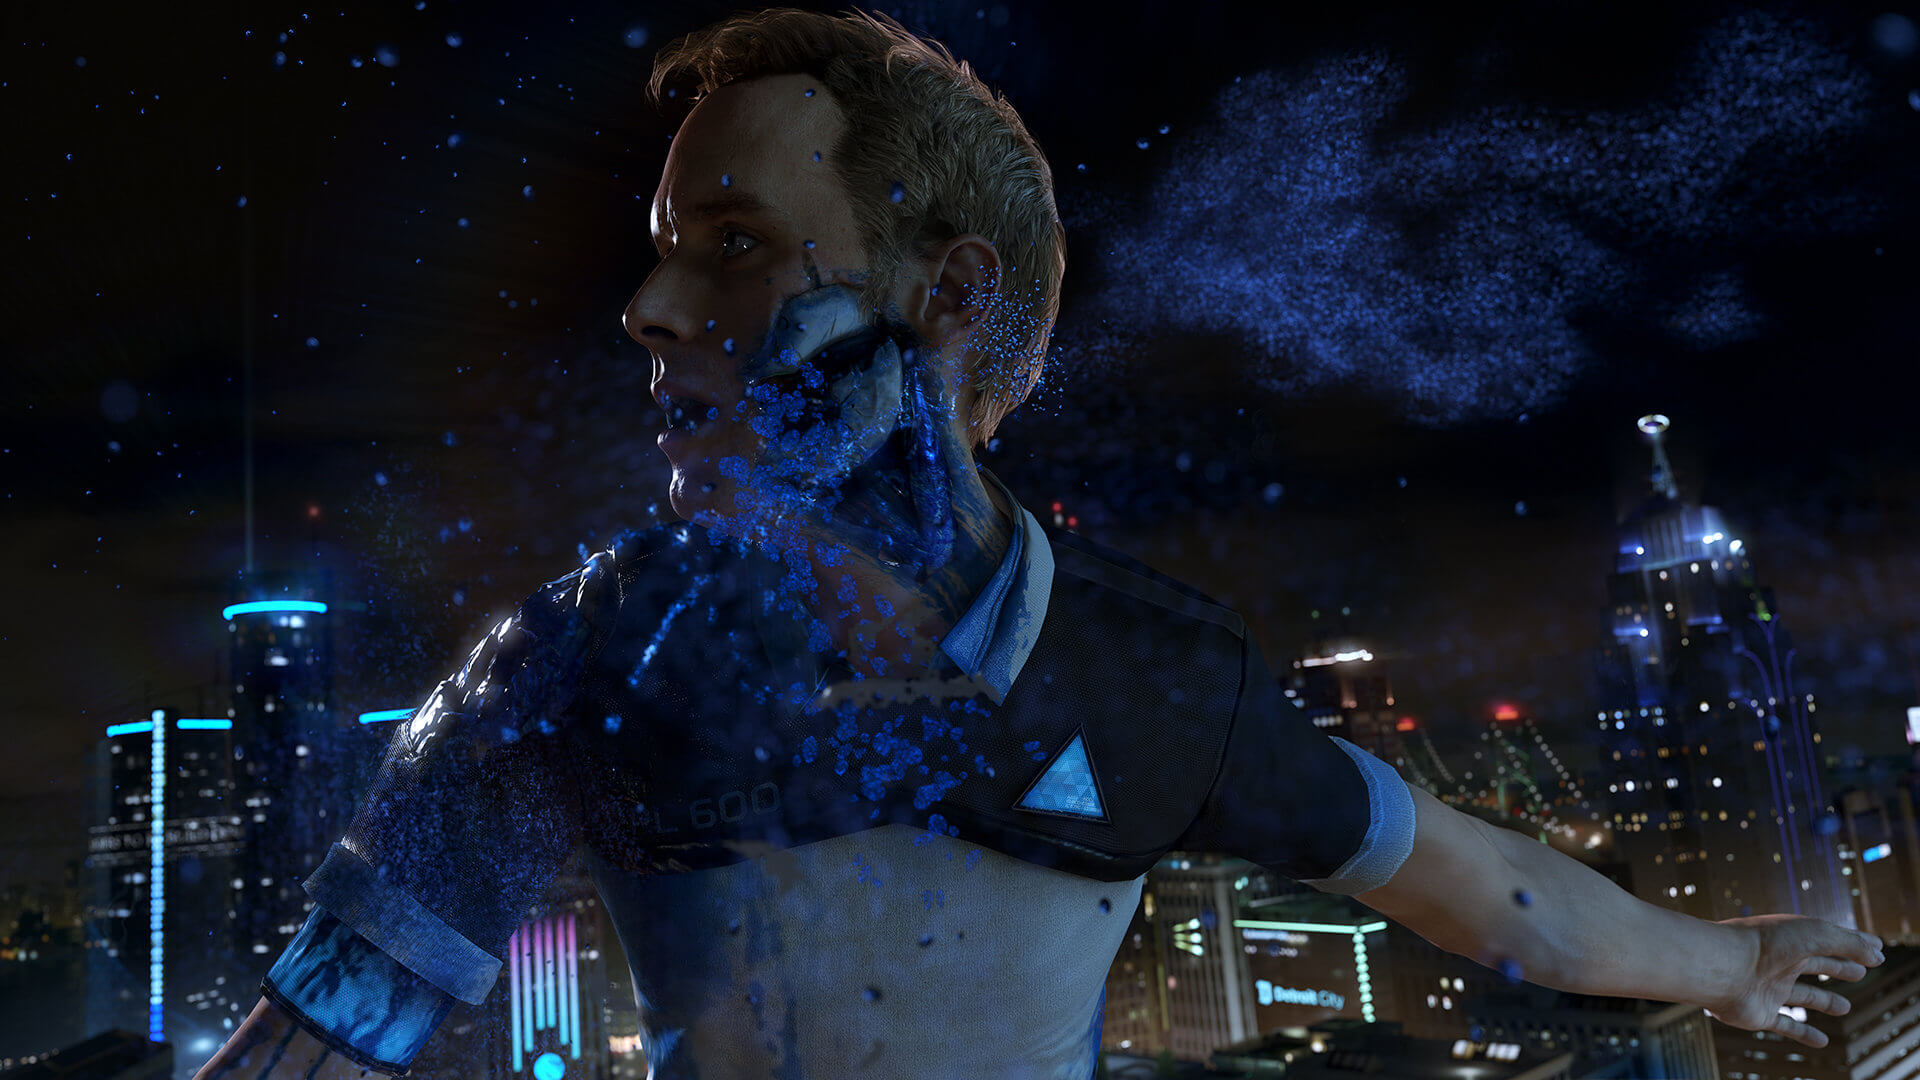 Detroit: Become Human Director on the Process of Writing Games